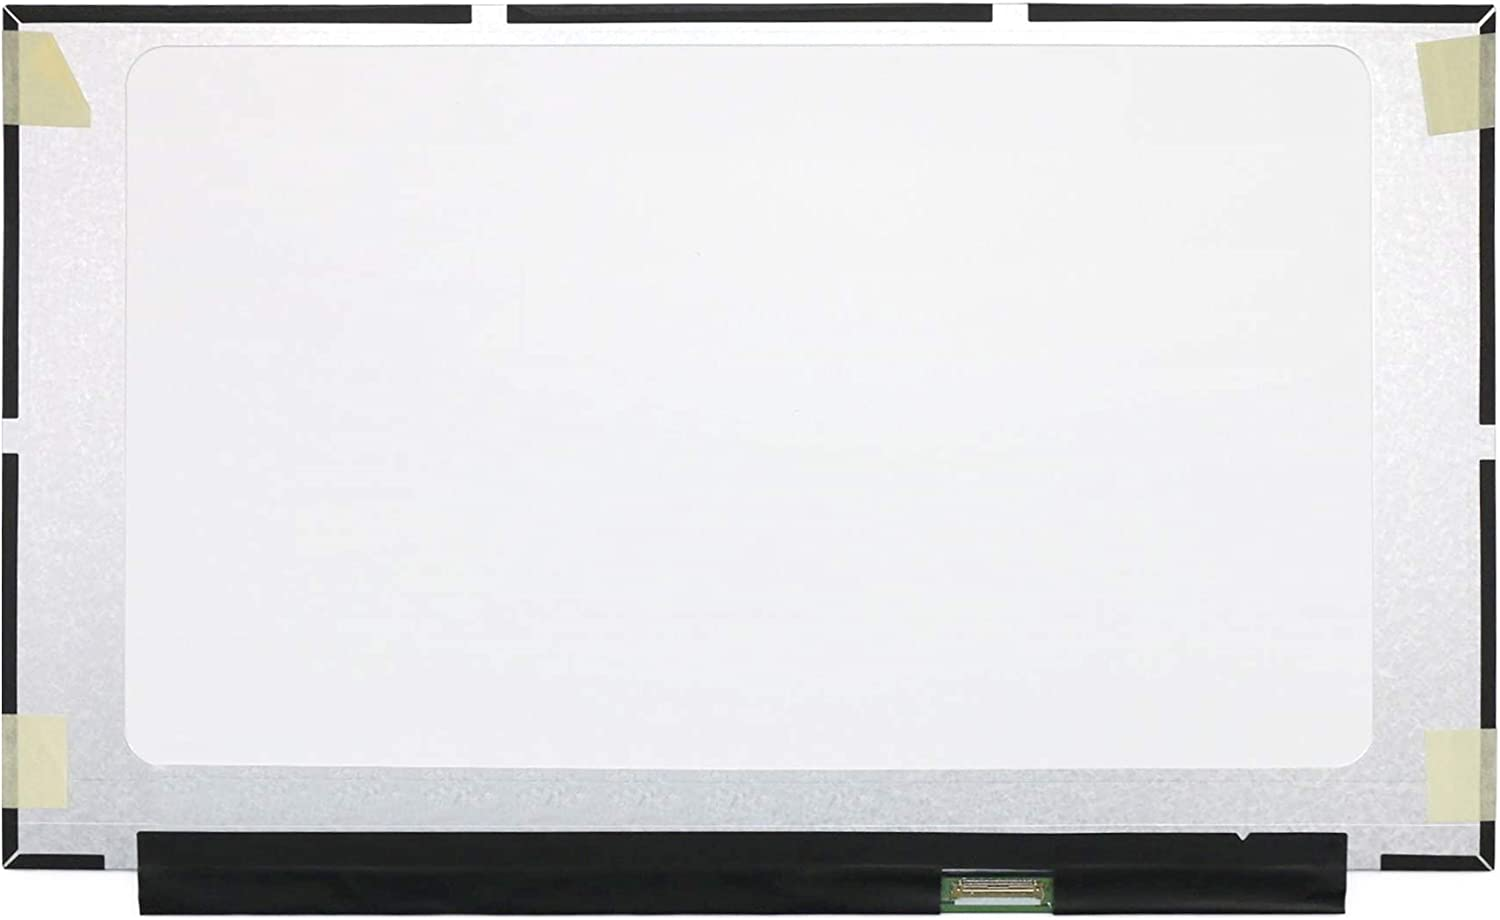 Glossy FHD 1920x1080 IPS SCREENARAMA New Screen Replacement for Lenovo ThinkPad T550 20CK LCD LED Display with Tools